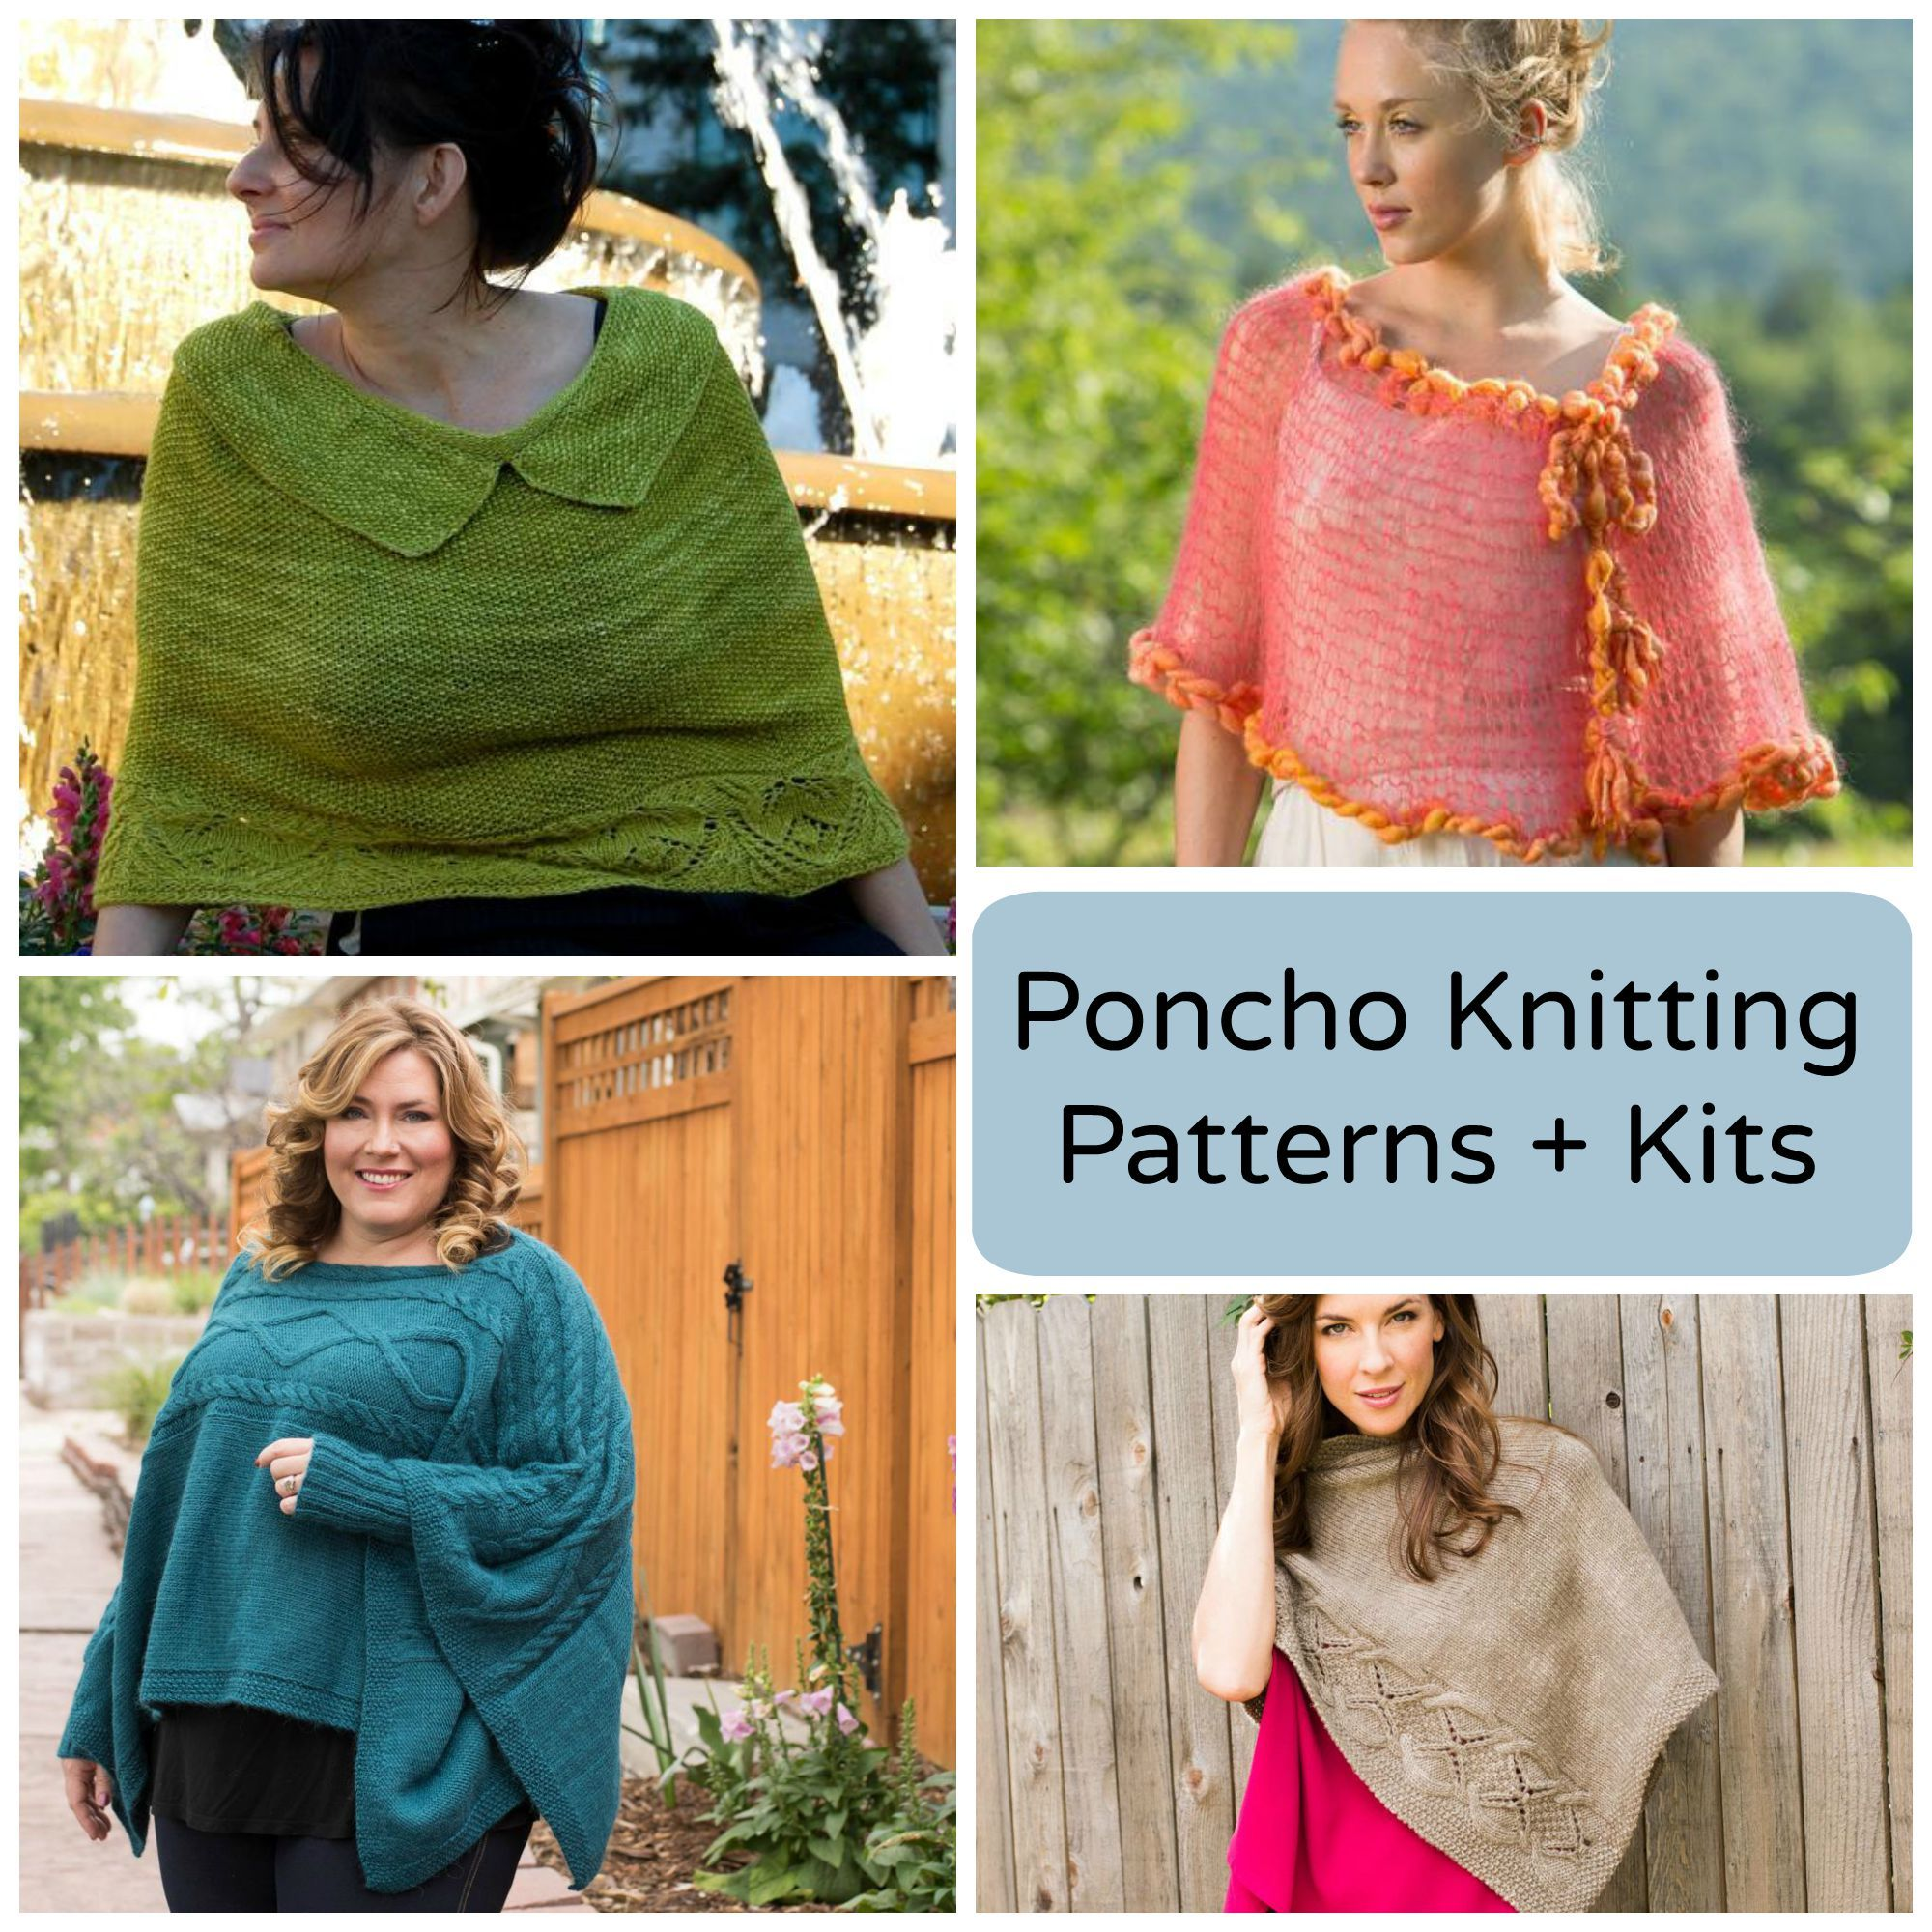 Ponchos stylish and capes 2019